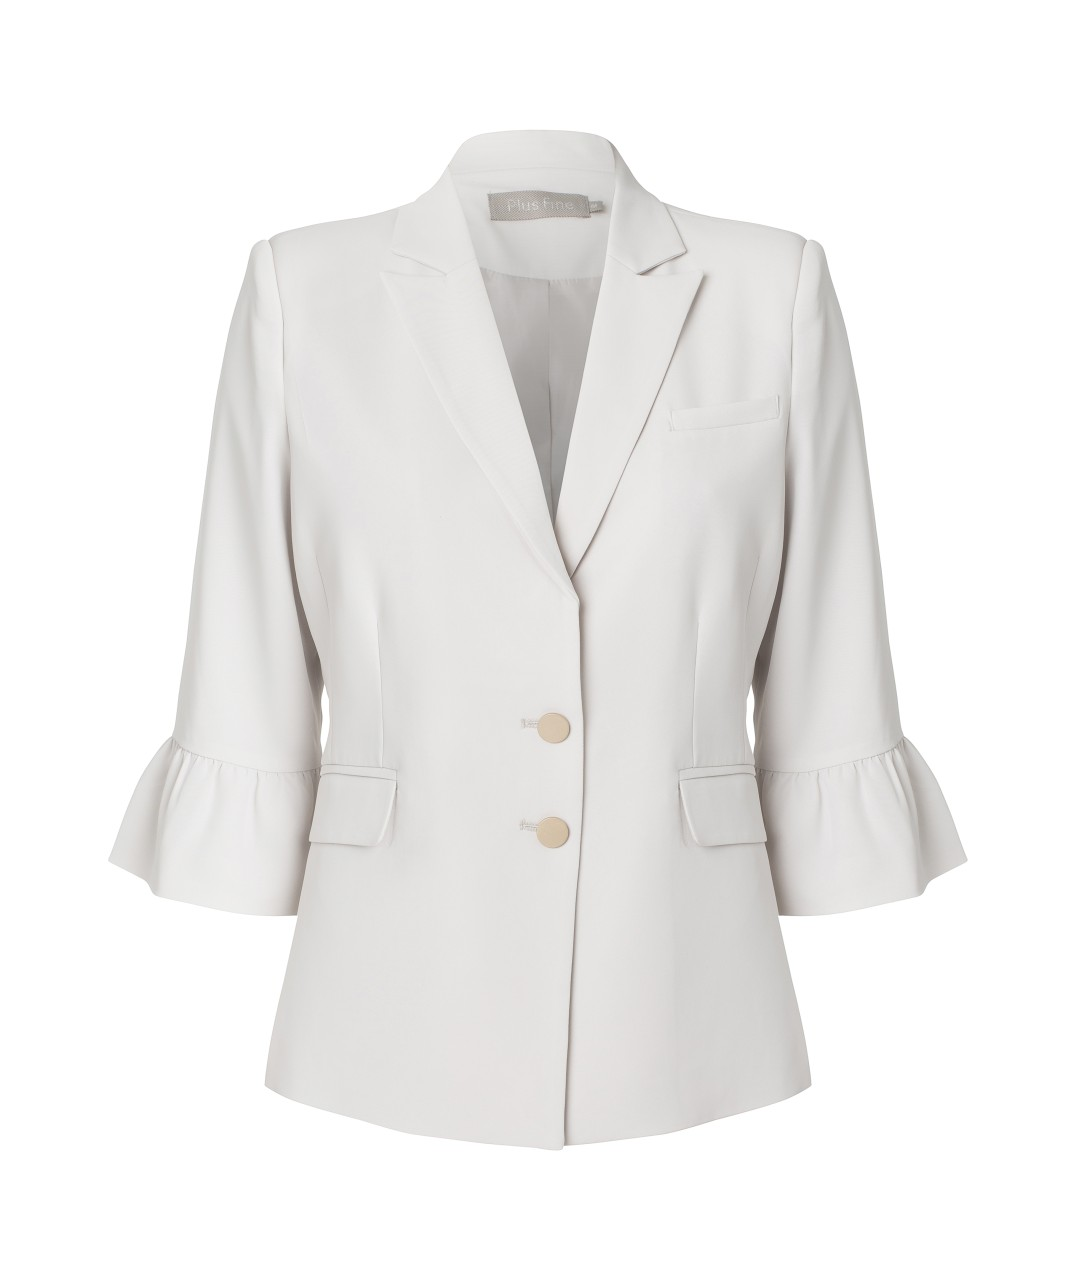 Plus Fine - Blazer  - Ione Fan - cream